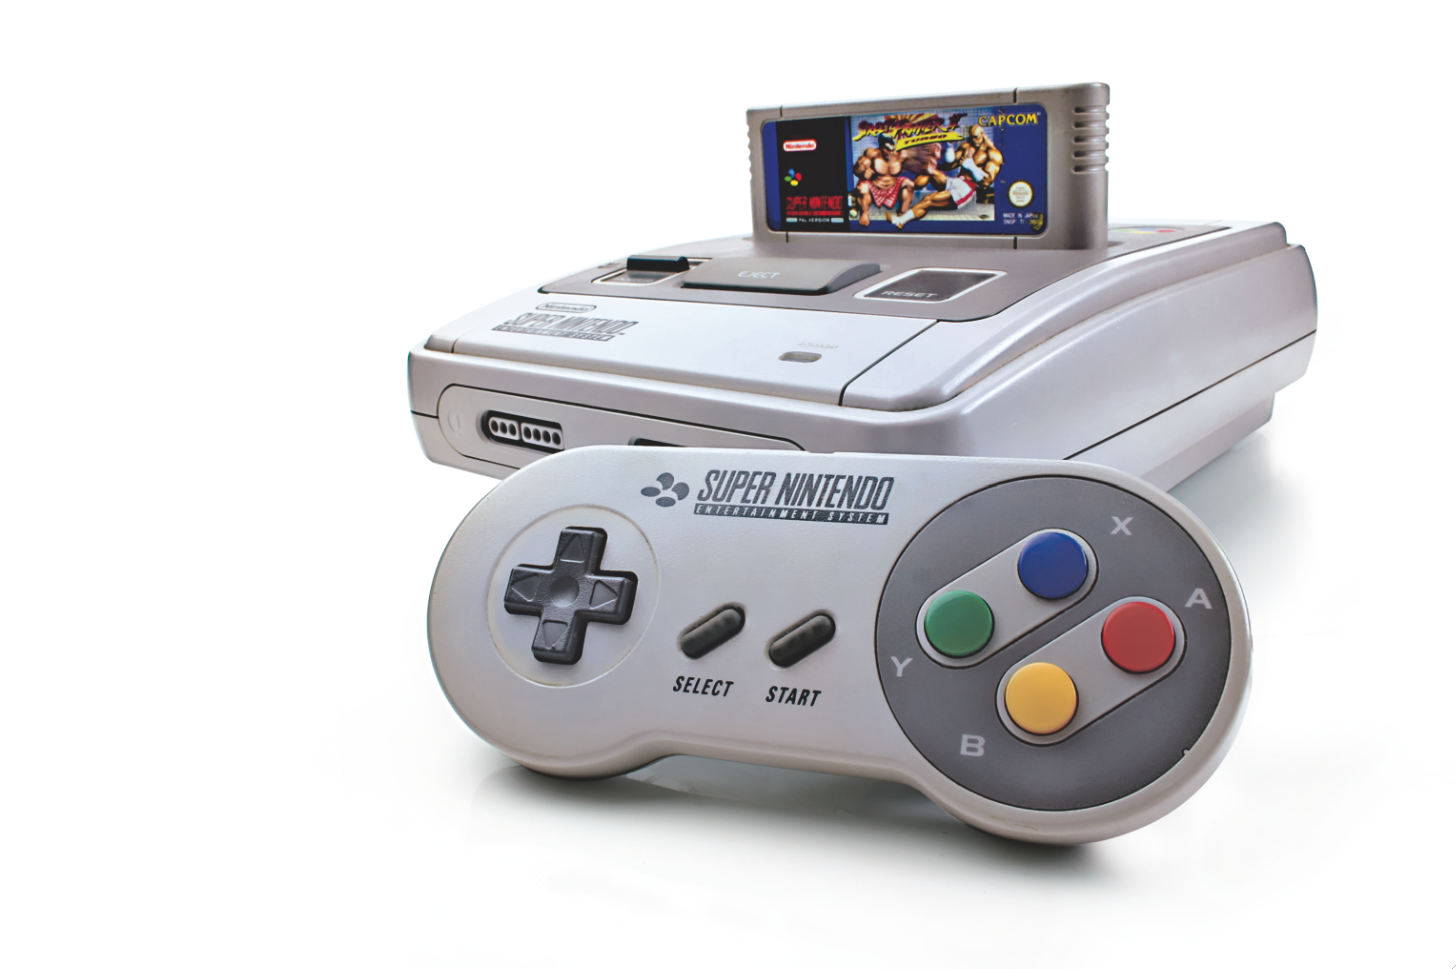 Rumor: A List of SNES VC Titles Was Found In The New 3DS' SNES